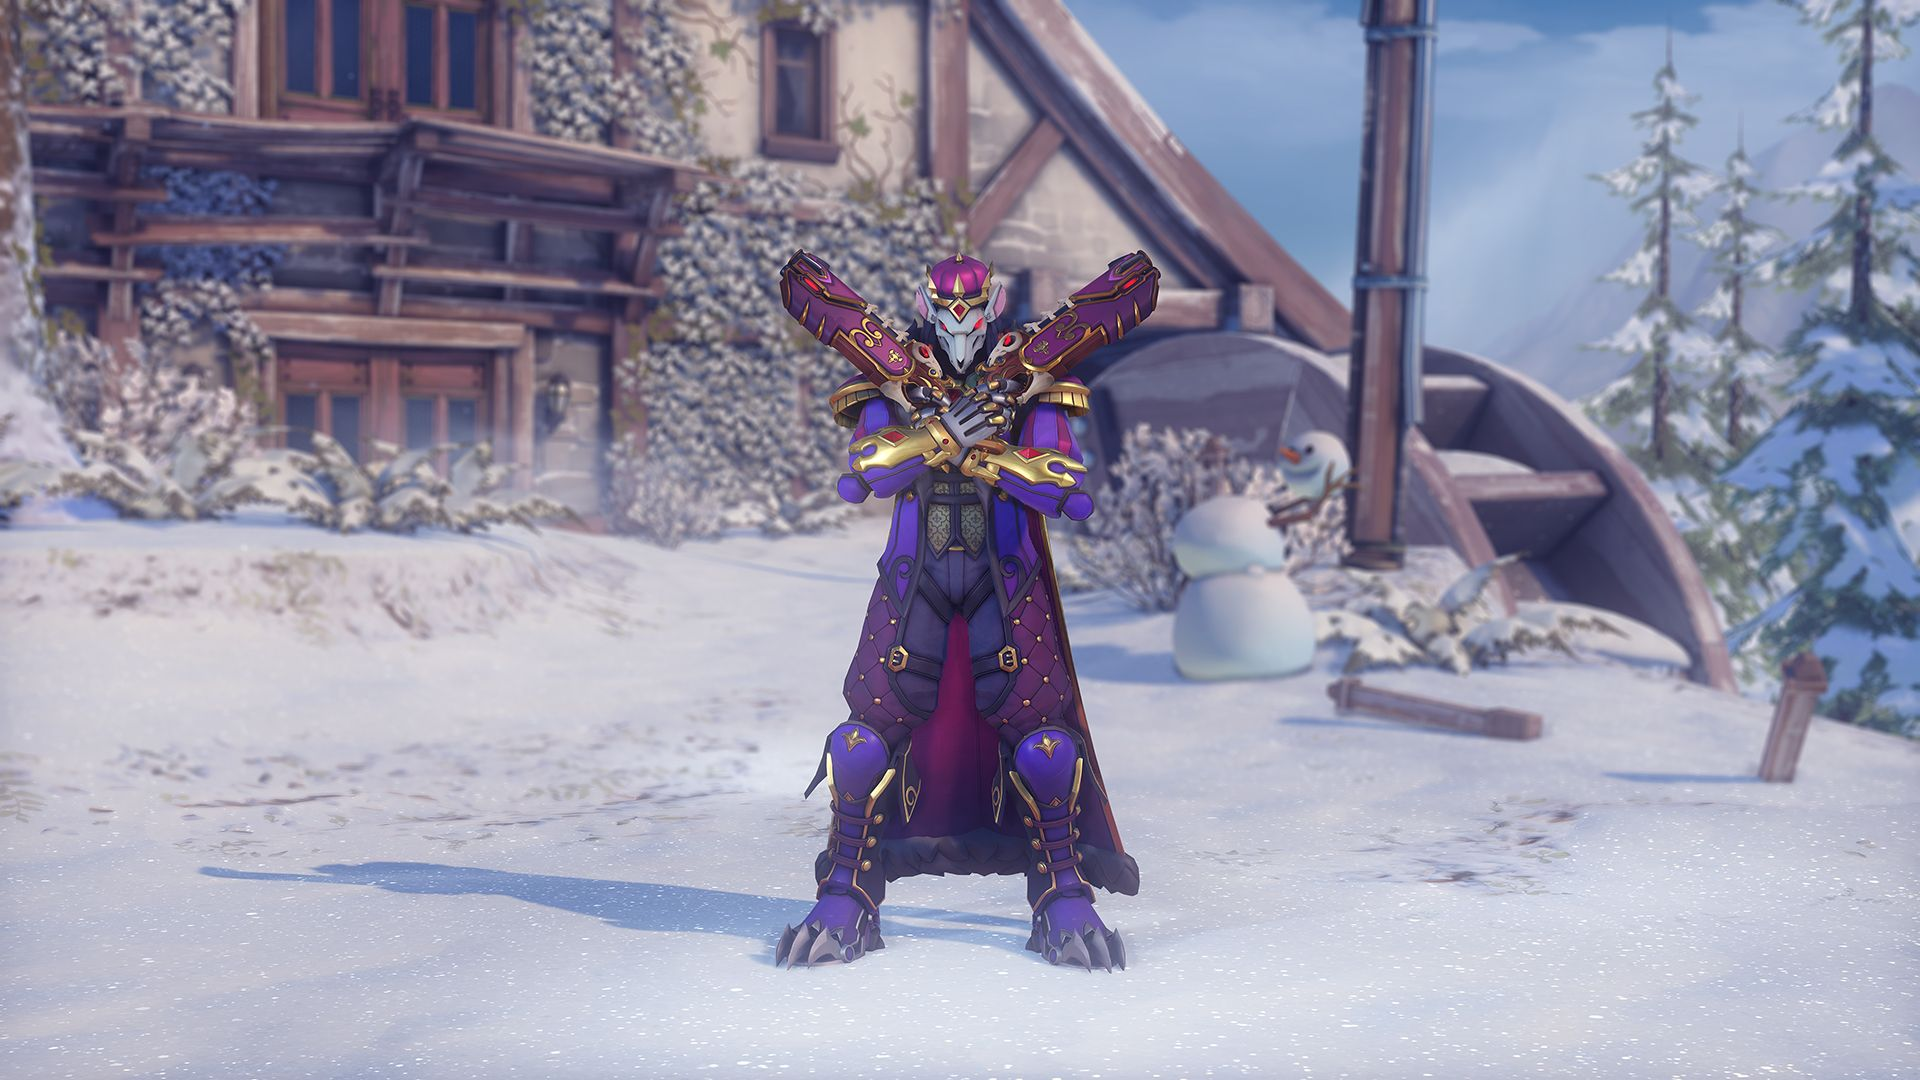 Overwatch Winter Wonderland 2020.Overwatch Winter Wonderland Event Is Now Live New Skins